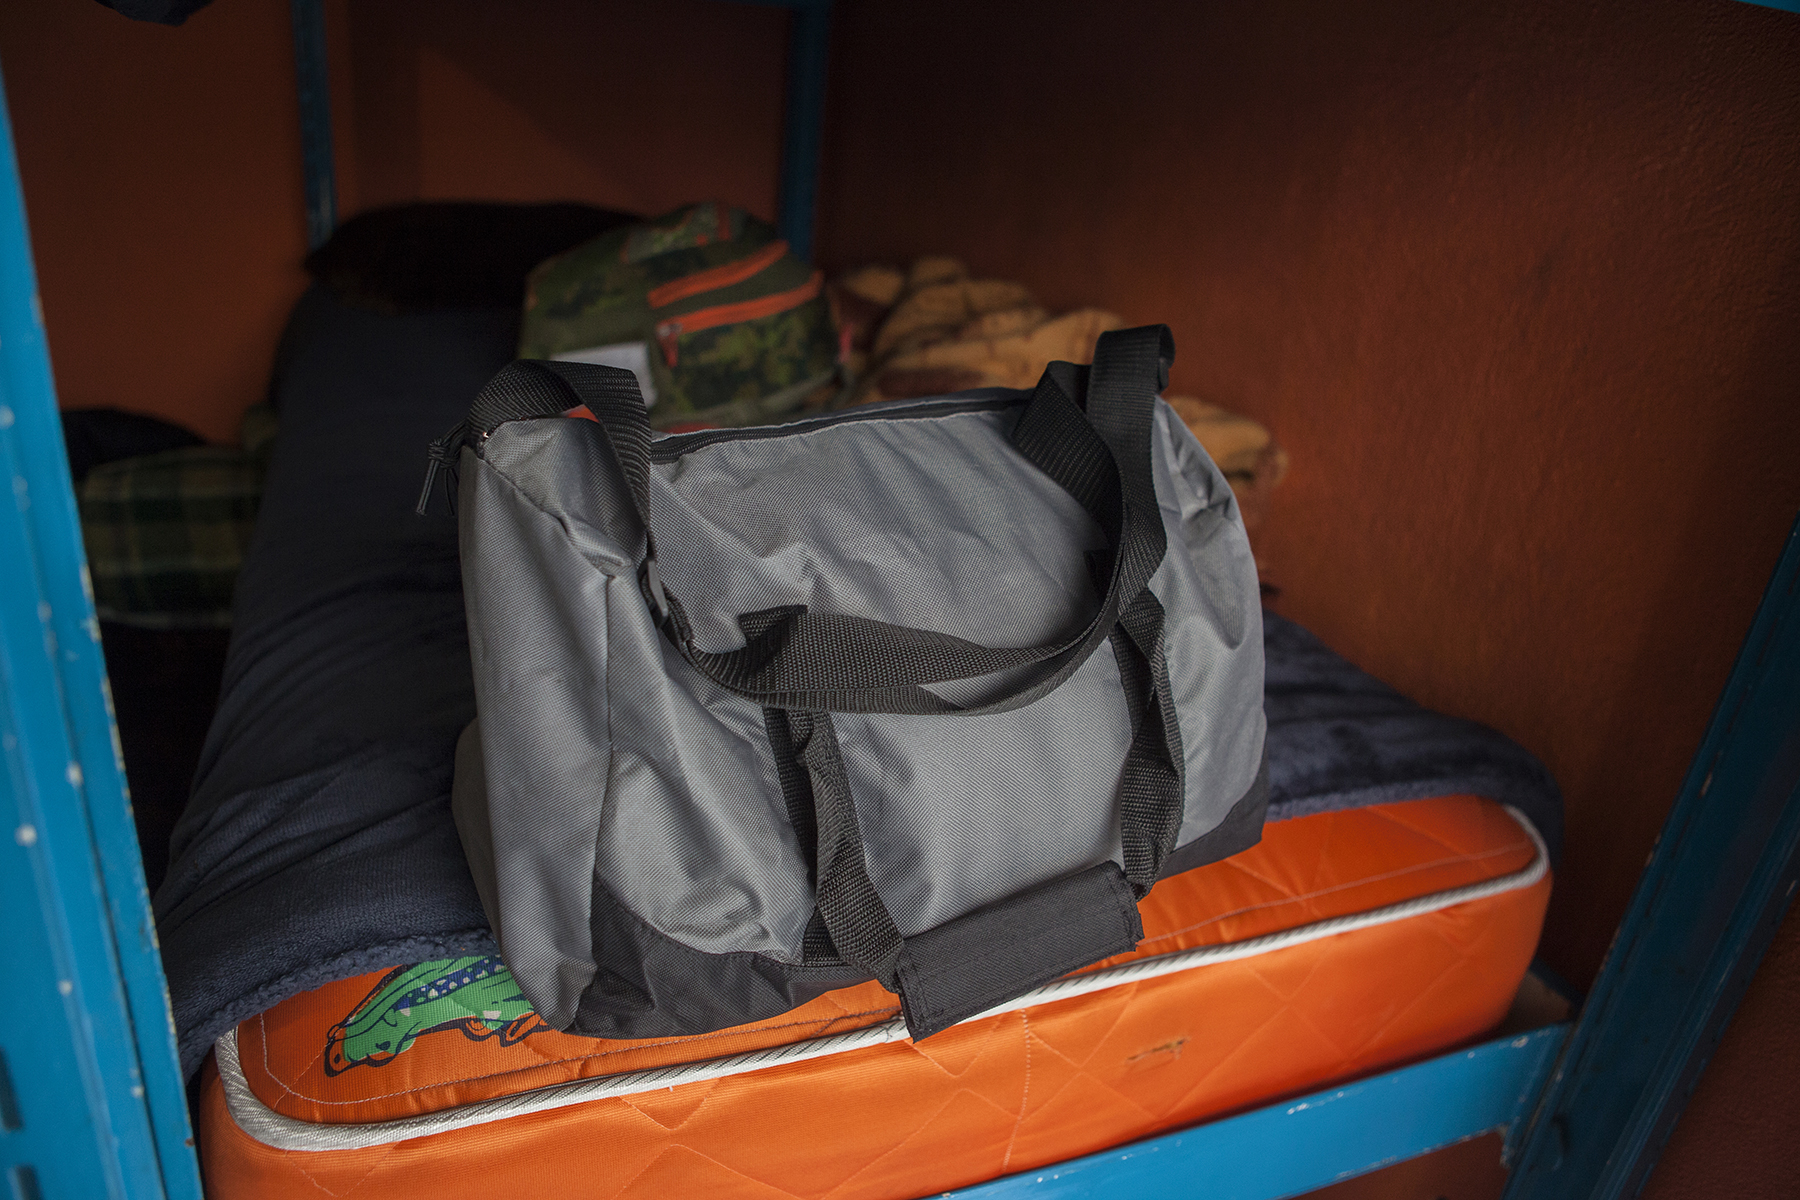 Unaccompanied child and teenage migrants like Vladi from El Salvador, whose duffle bag of possessions is shown here, stay in Tijuana, Mexico's only shelter for minors on November 29, 2018. CREDIT: Erin Siegal McIntyre for Frontline